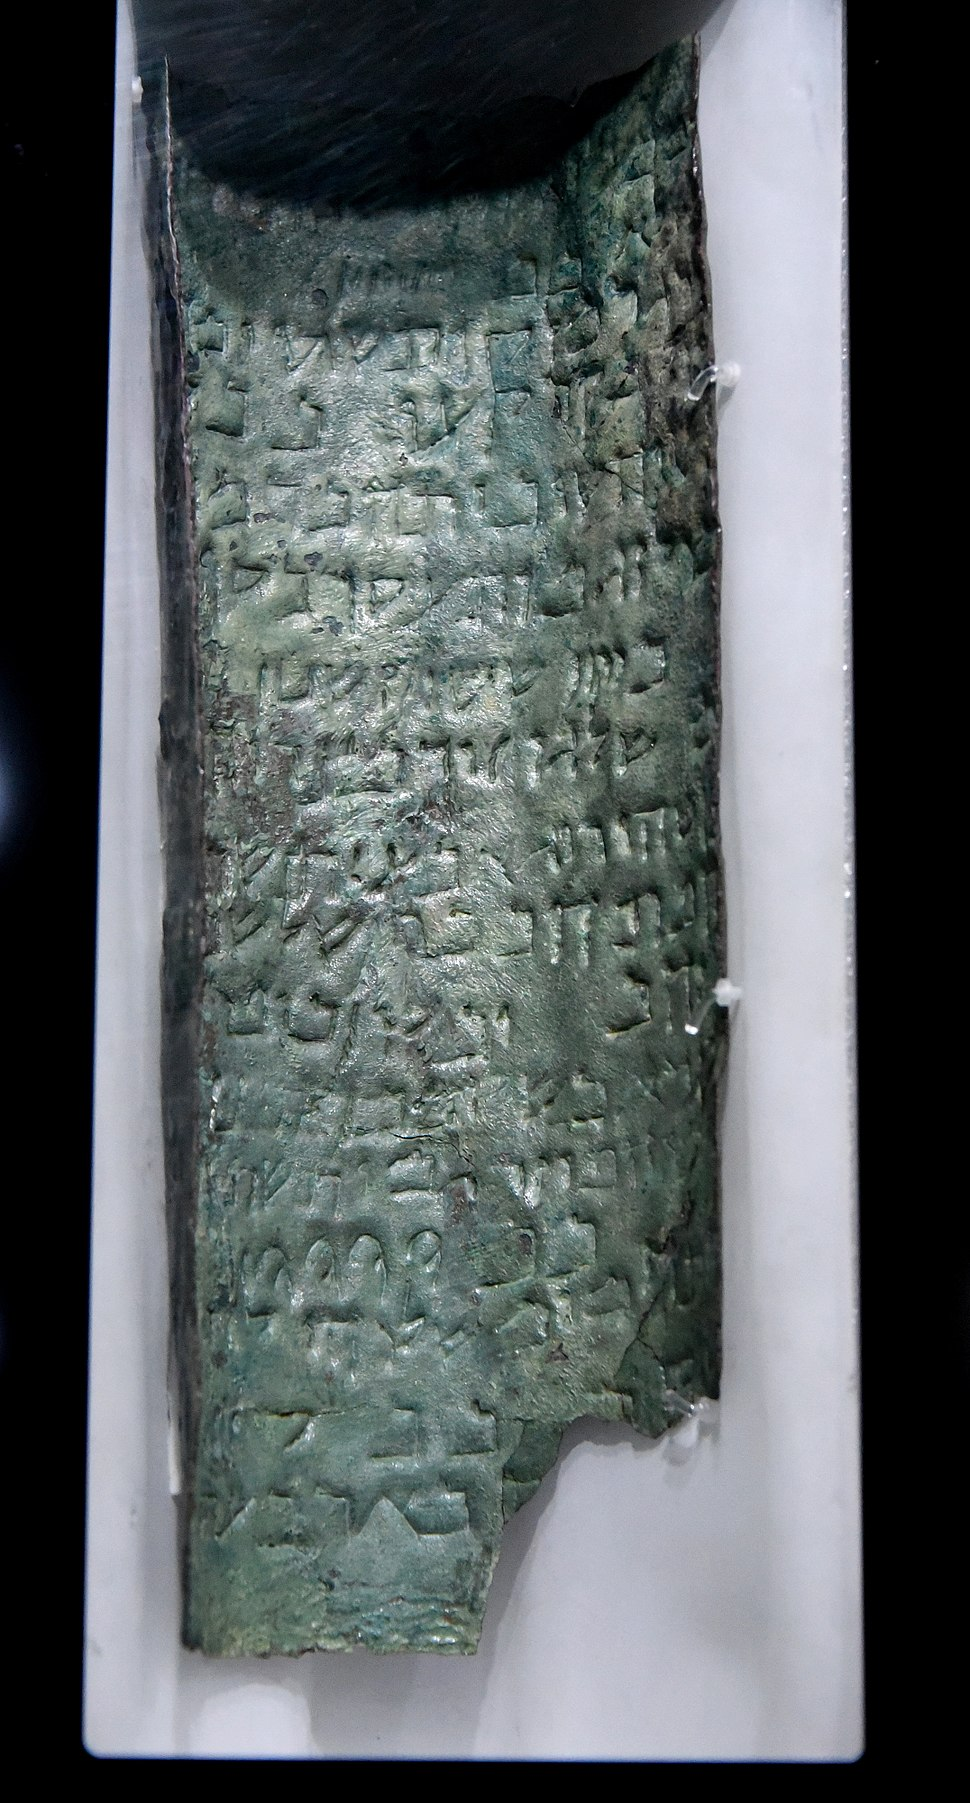 Strip of the Copper Scroll from Qumran Cave 3 written in the Hebrew Mishnaic dialect, on display at the Jordan Museum, Amman